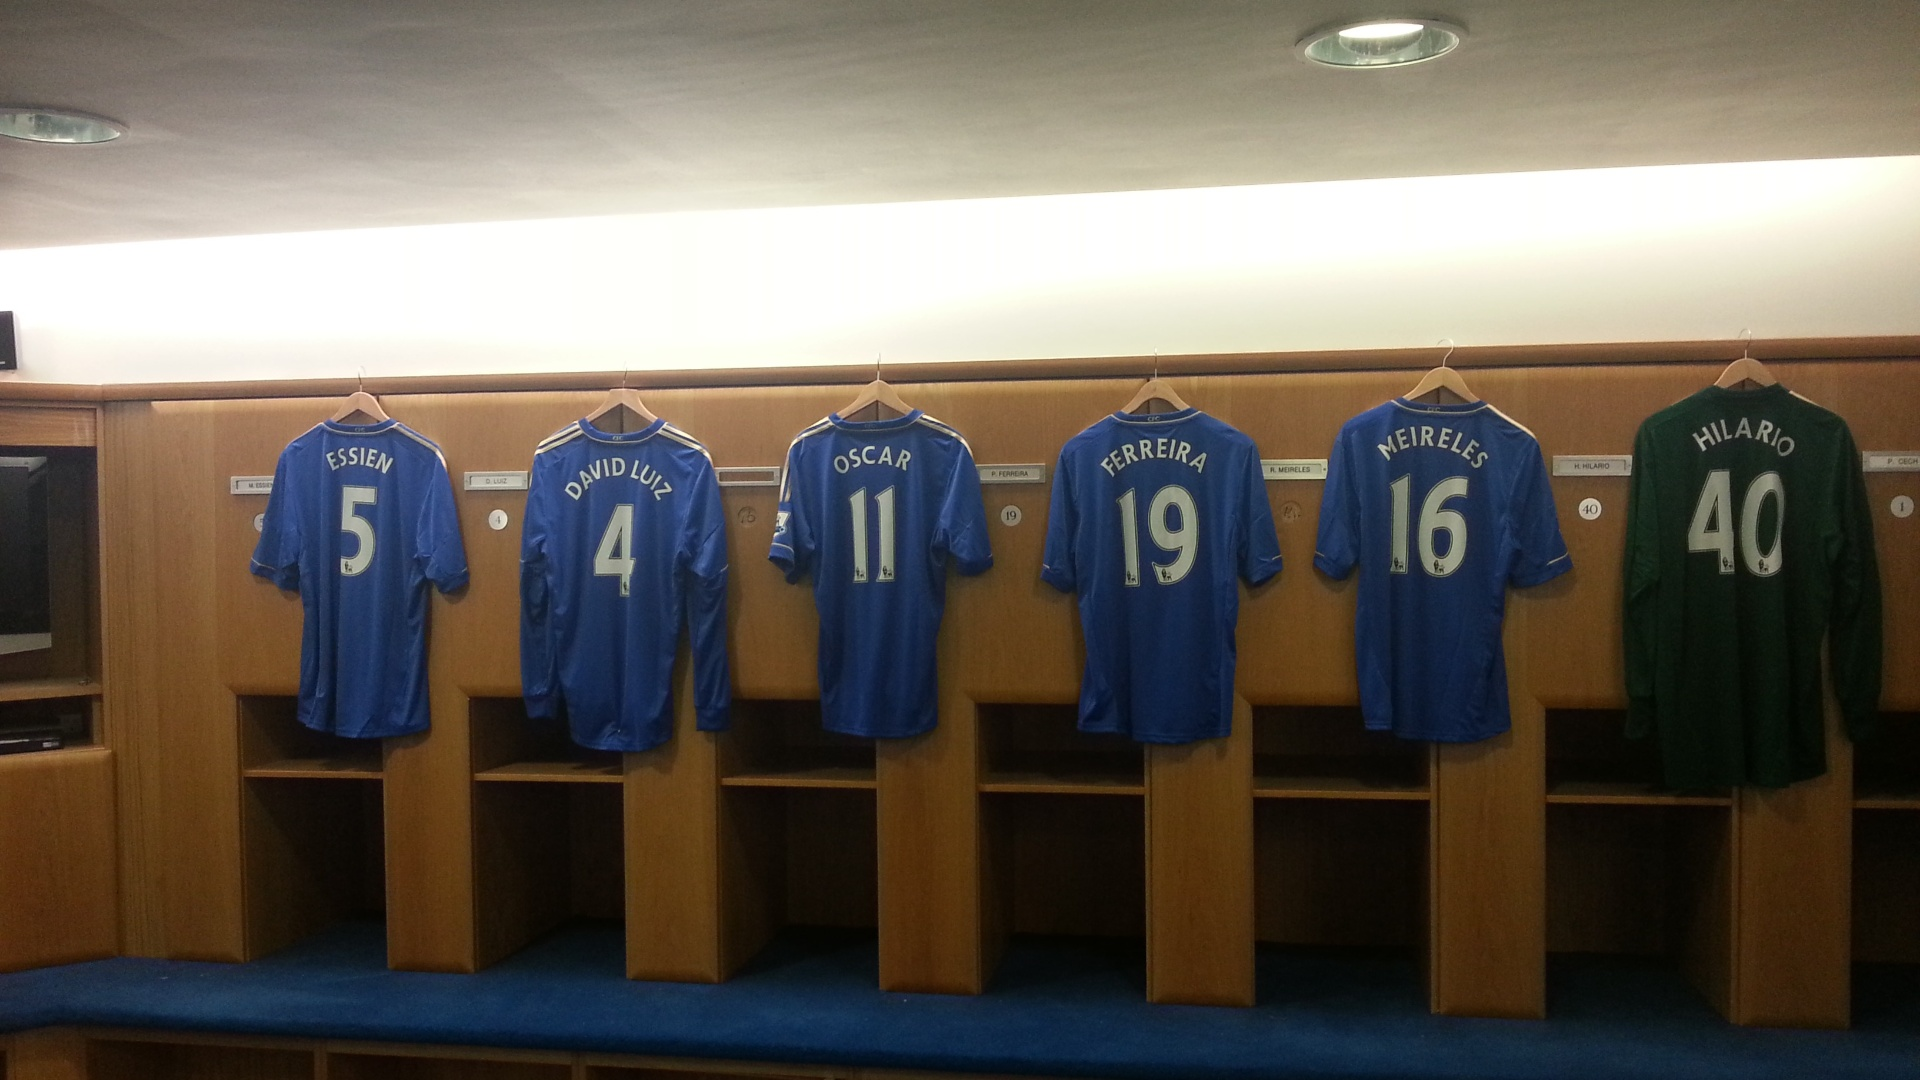 Chelsea d camisa 11 de Drogba para Oscar e j a coloca no vestirio